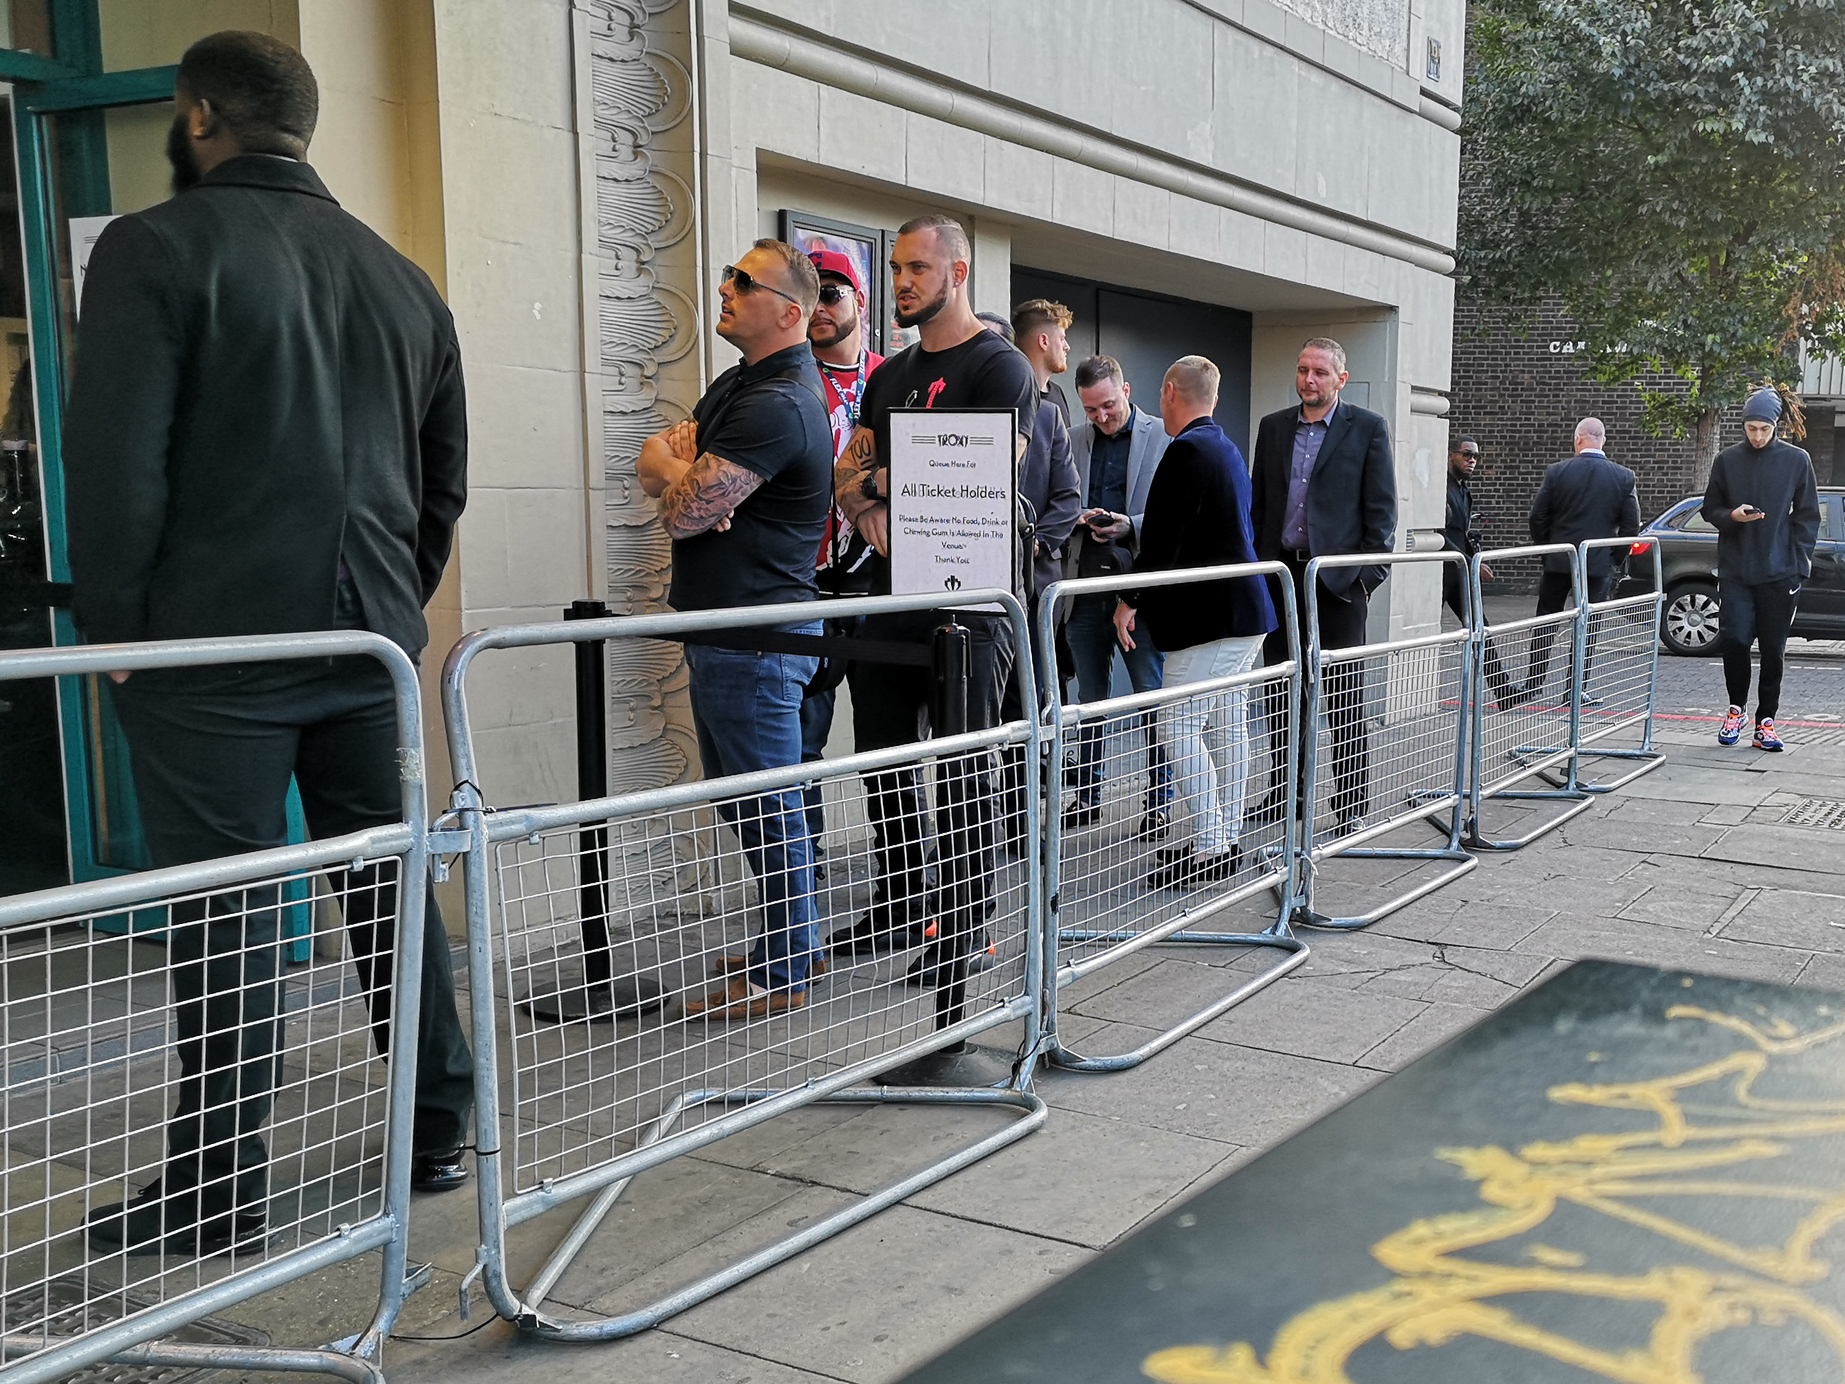 The queue for ticketholders is much more intimidating,to the point where I think security might not even check whether these people actually  have  tickets. Also that man's beard is amazing.